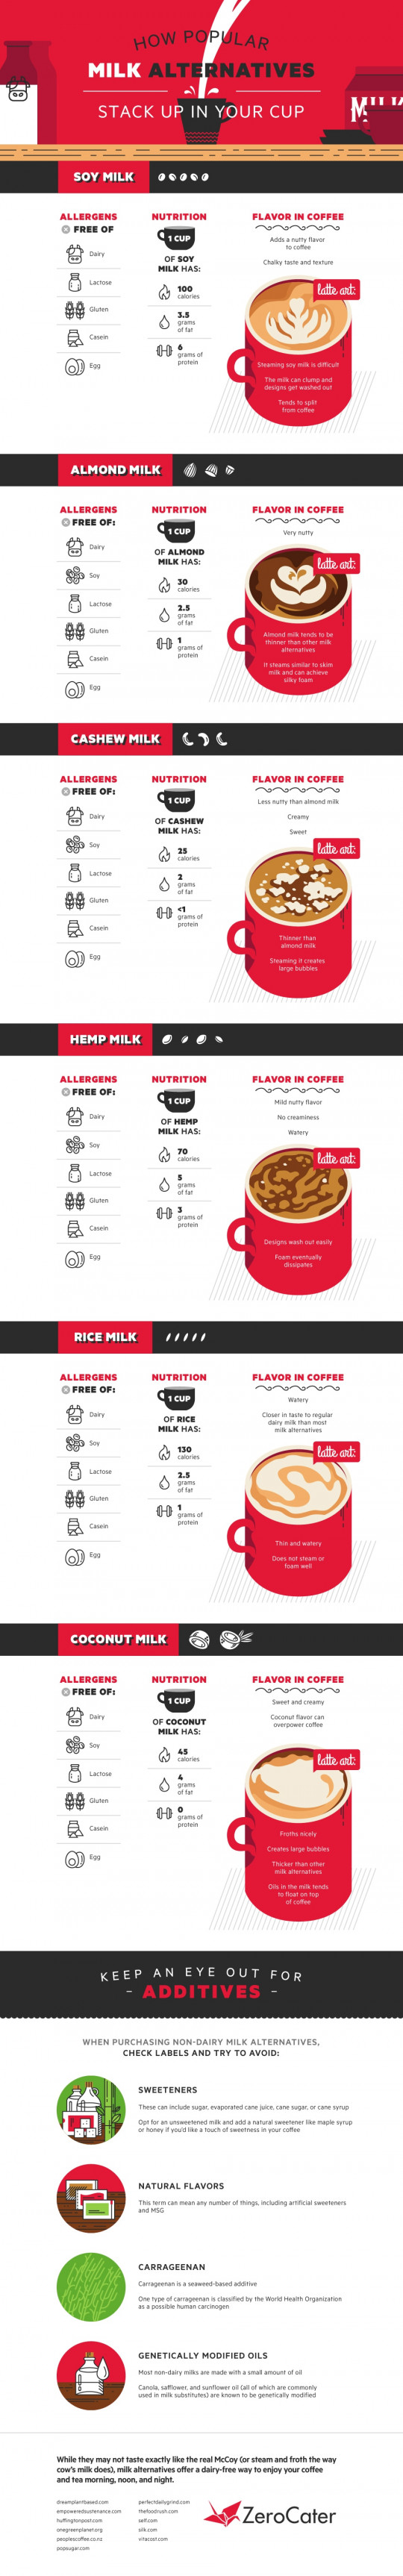 How Popular Milk Alternatives Stack up in Your Cup